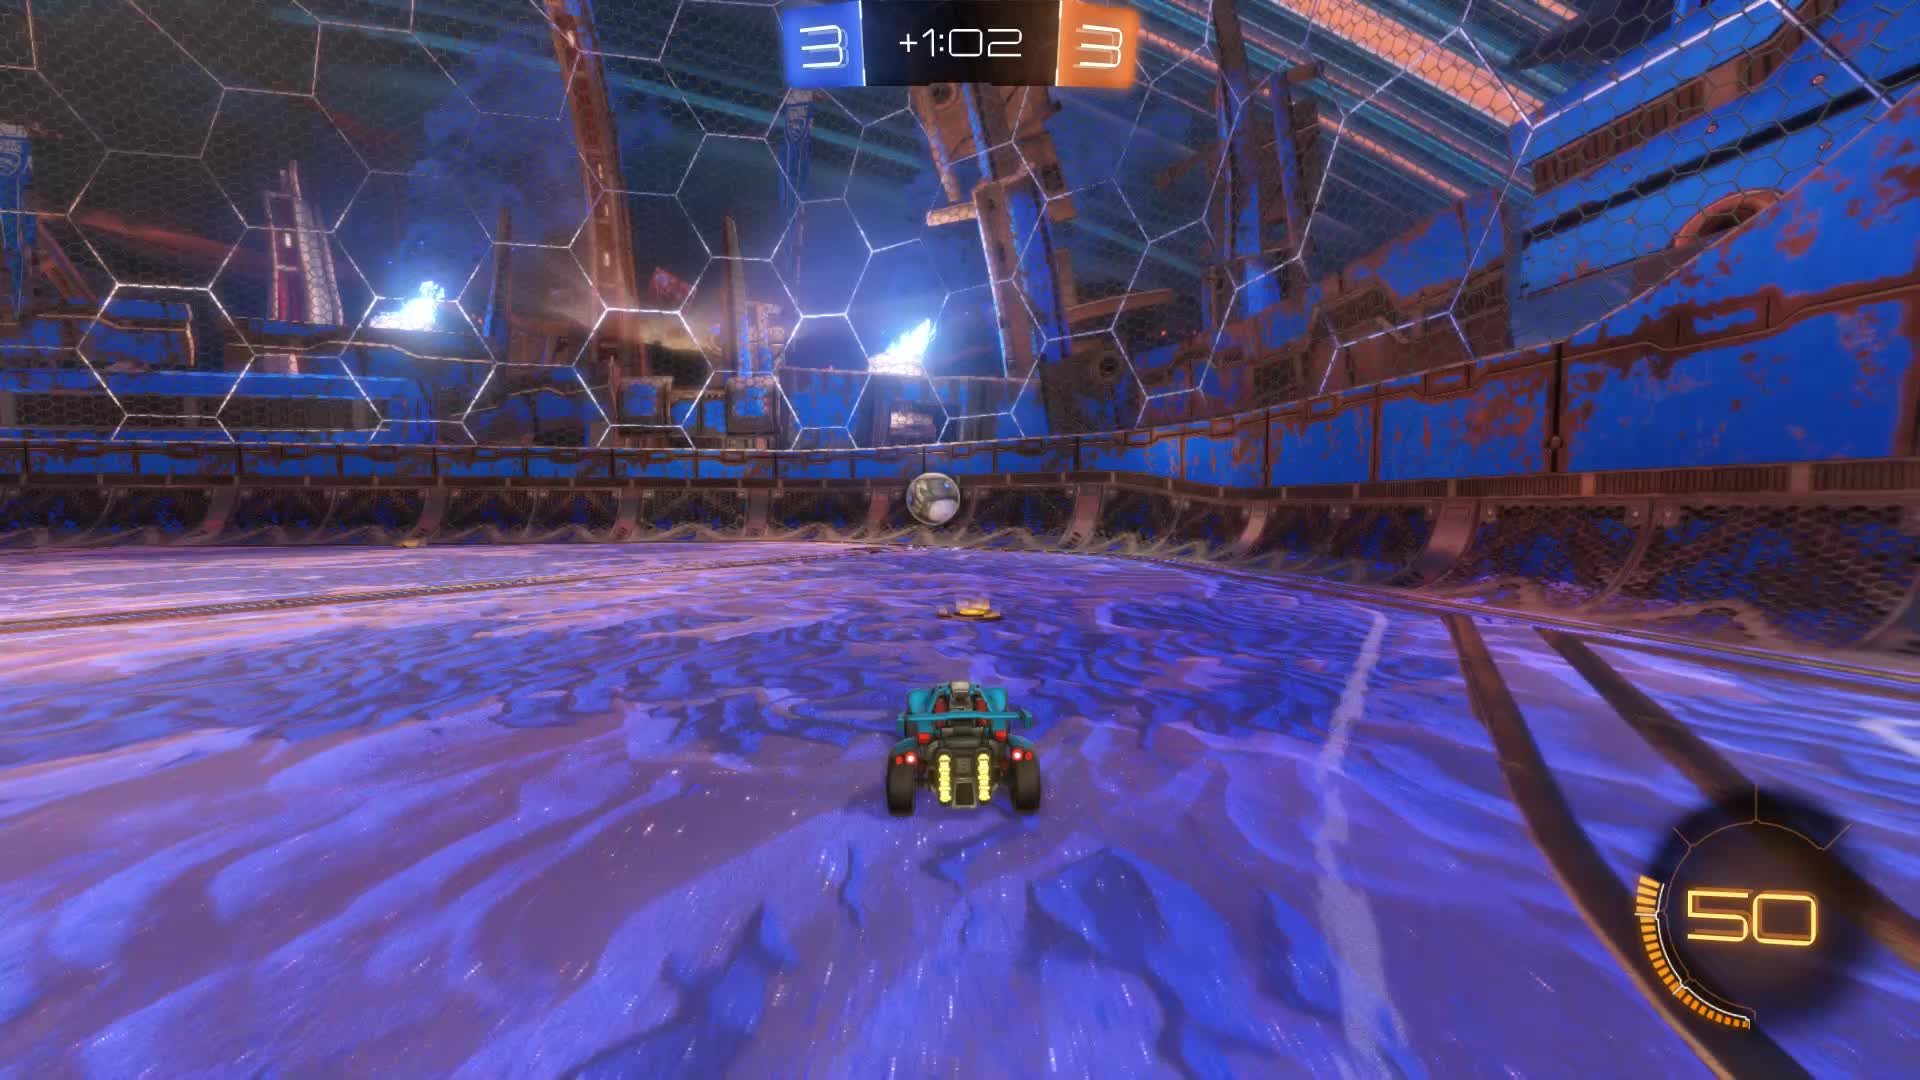 Assist, Colorado, Gif Your Game, GifYourGame, Rocket League, RocketLeague, Assist 4: Colorado GIFs